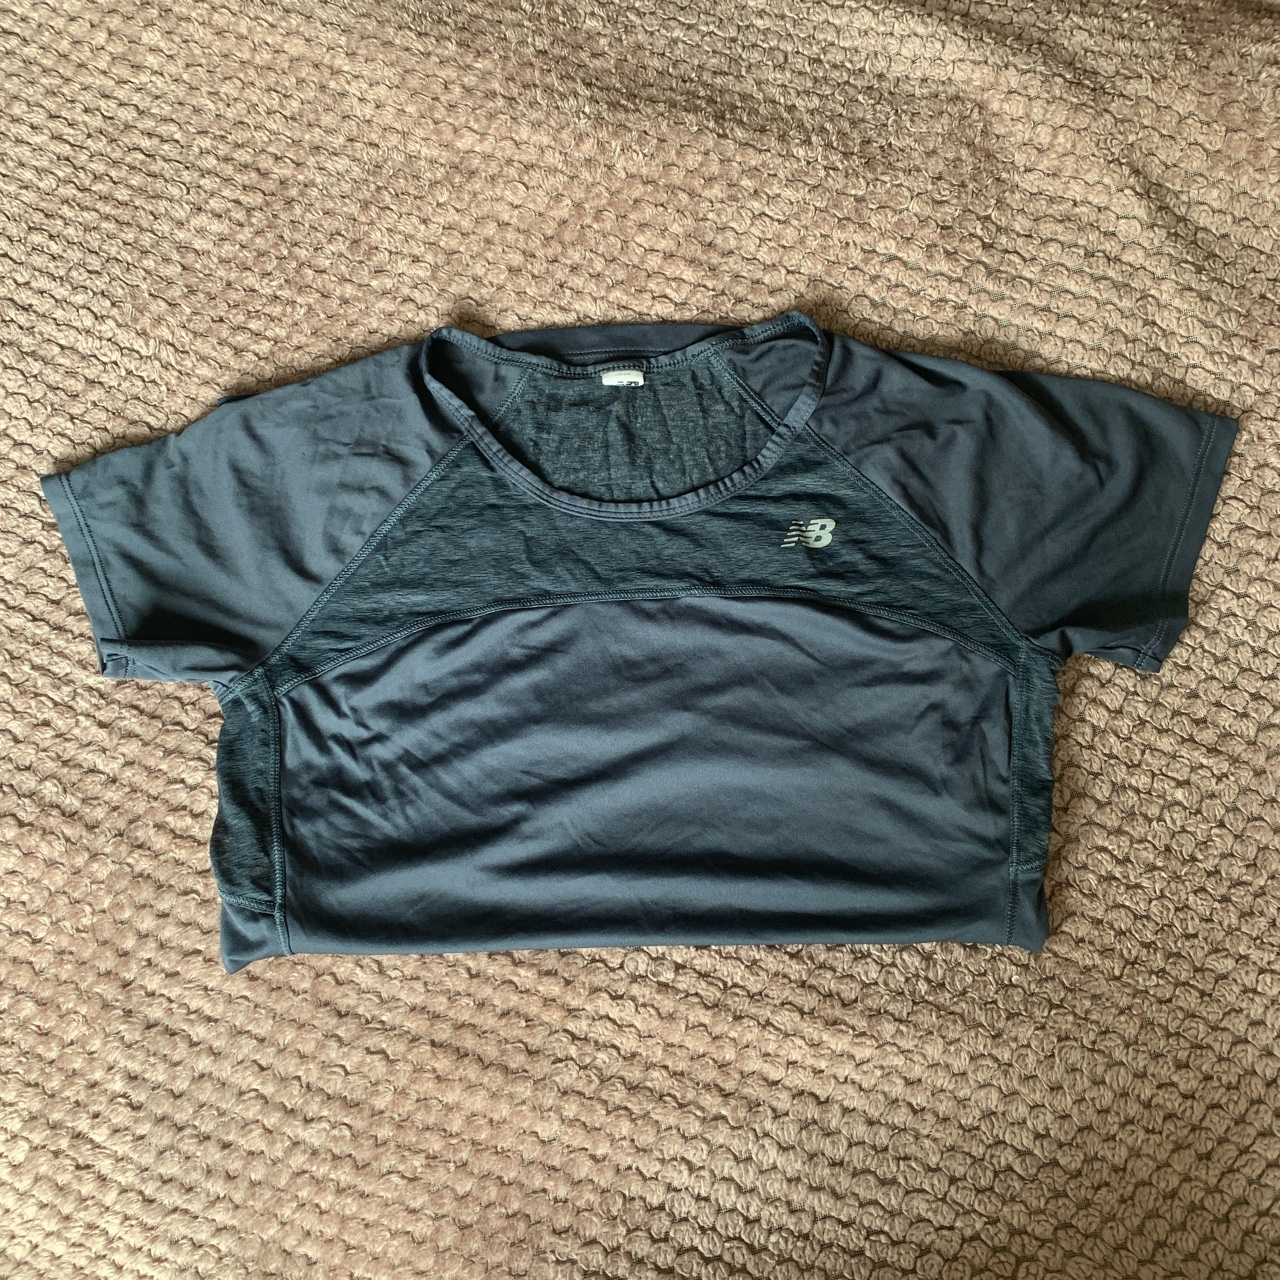 Woman's New Balance Gym Top - Excellent